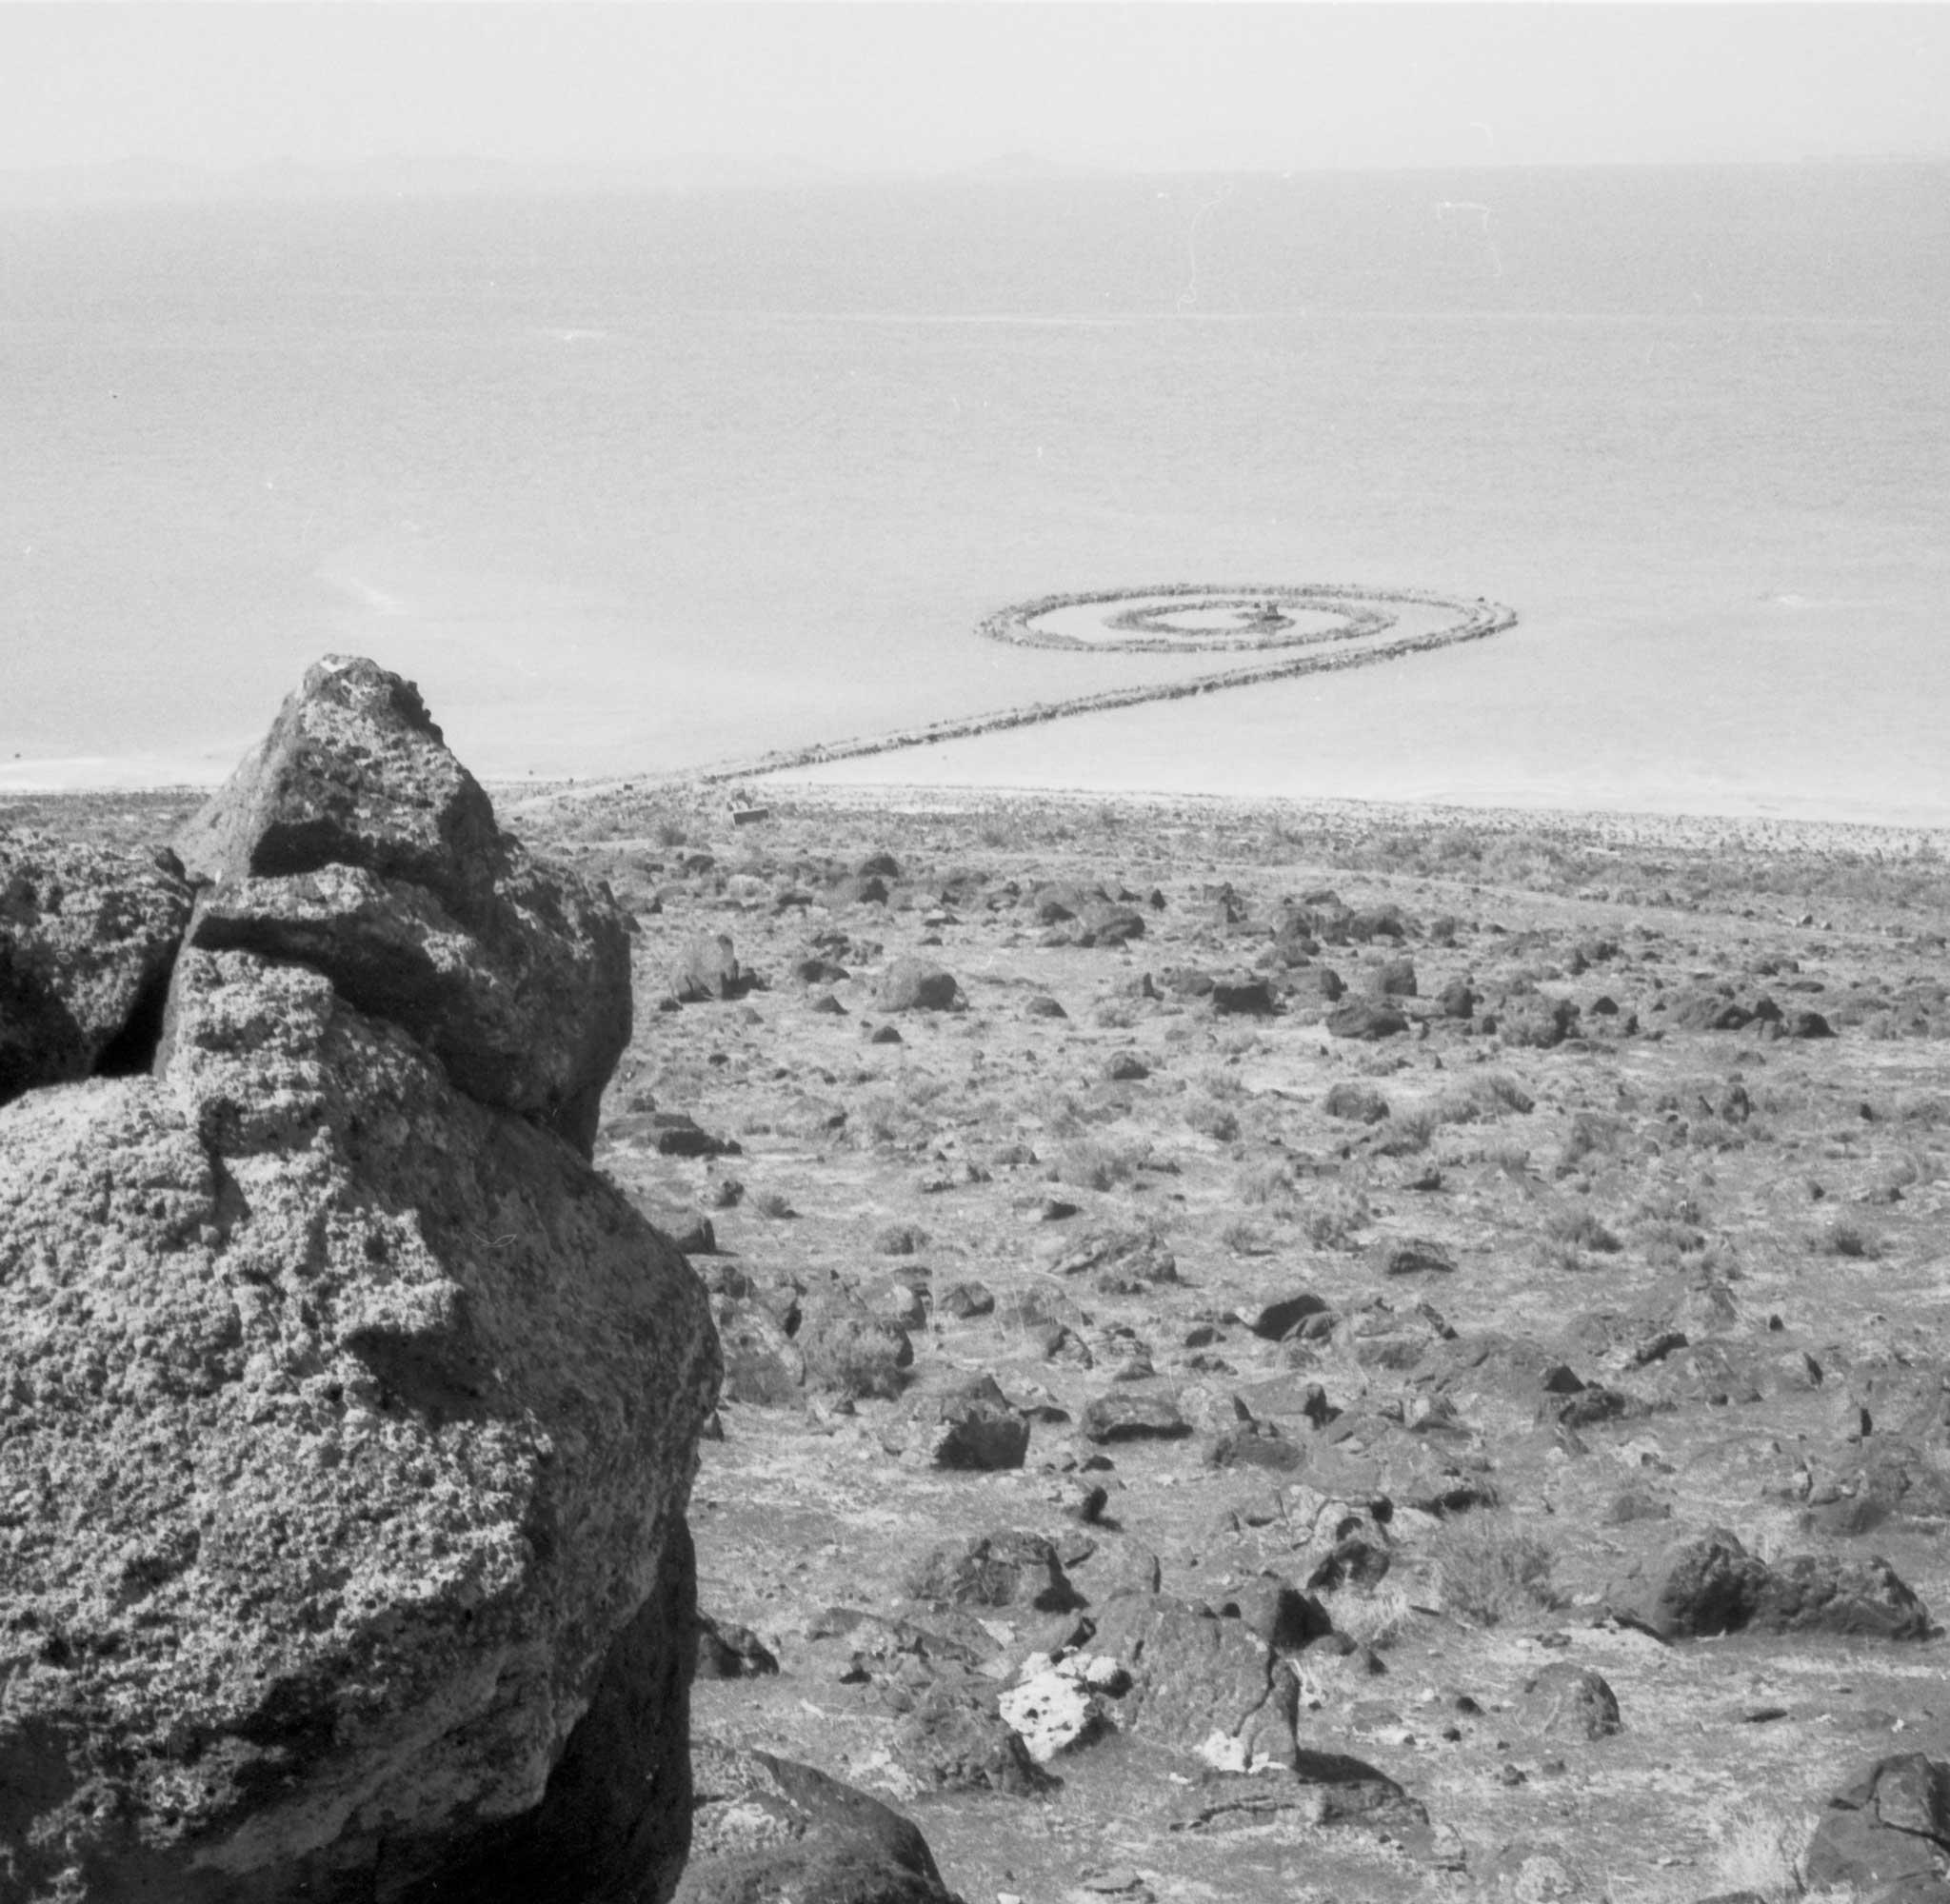 black and white image showing a spiraling jetty of rock extending out into a lake, with the shoreline and rocks in the foreground